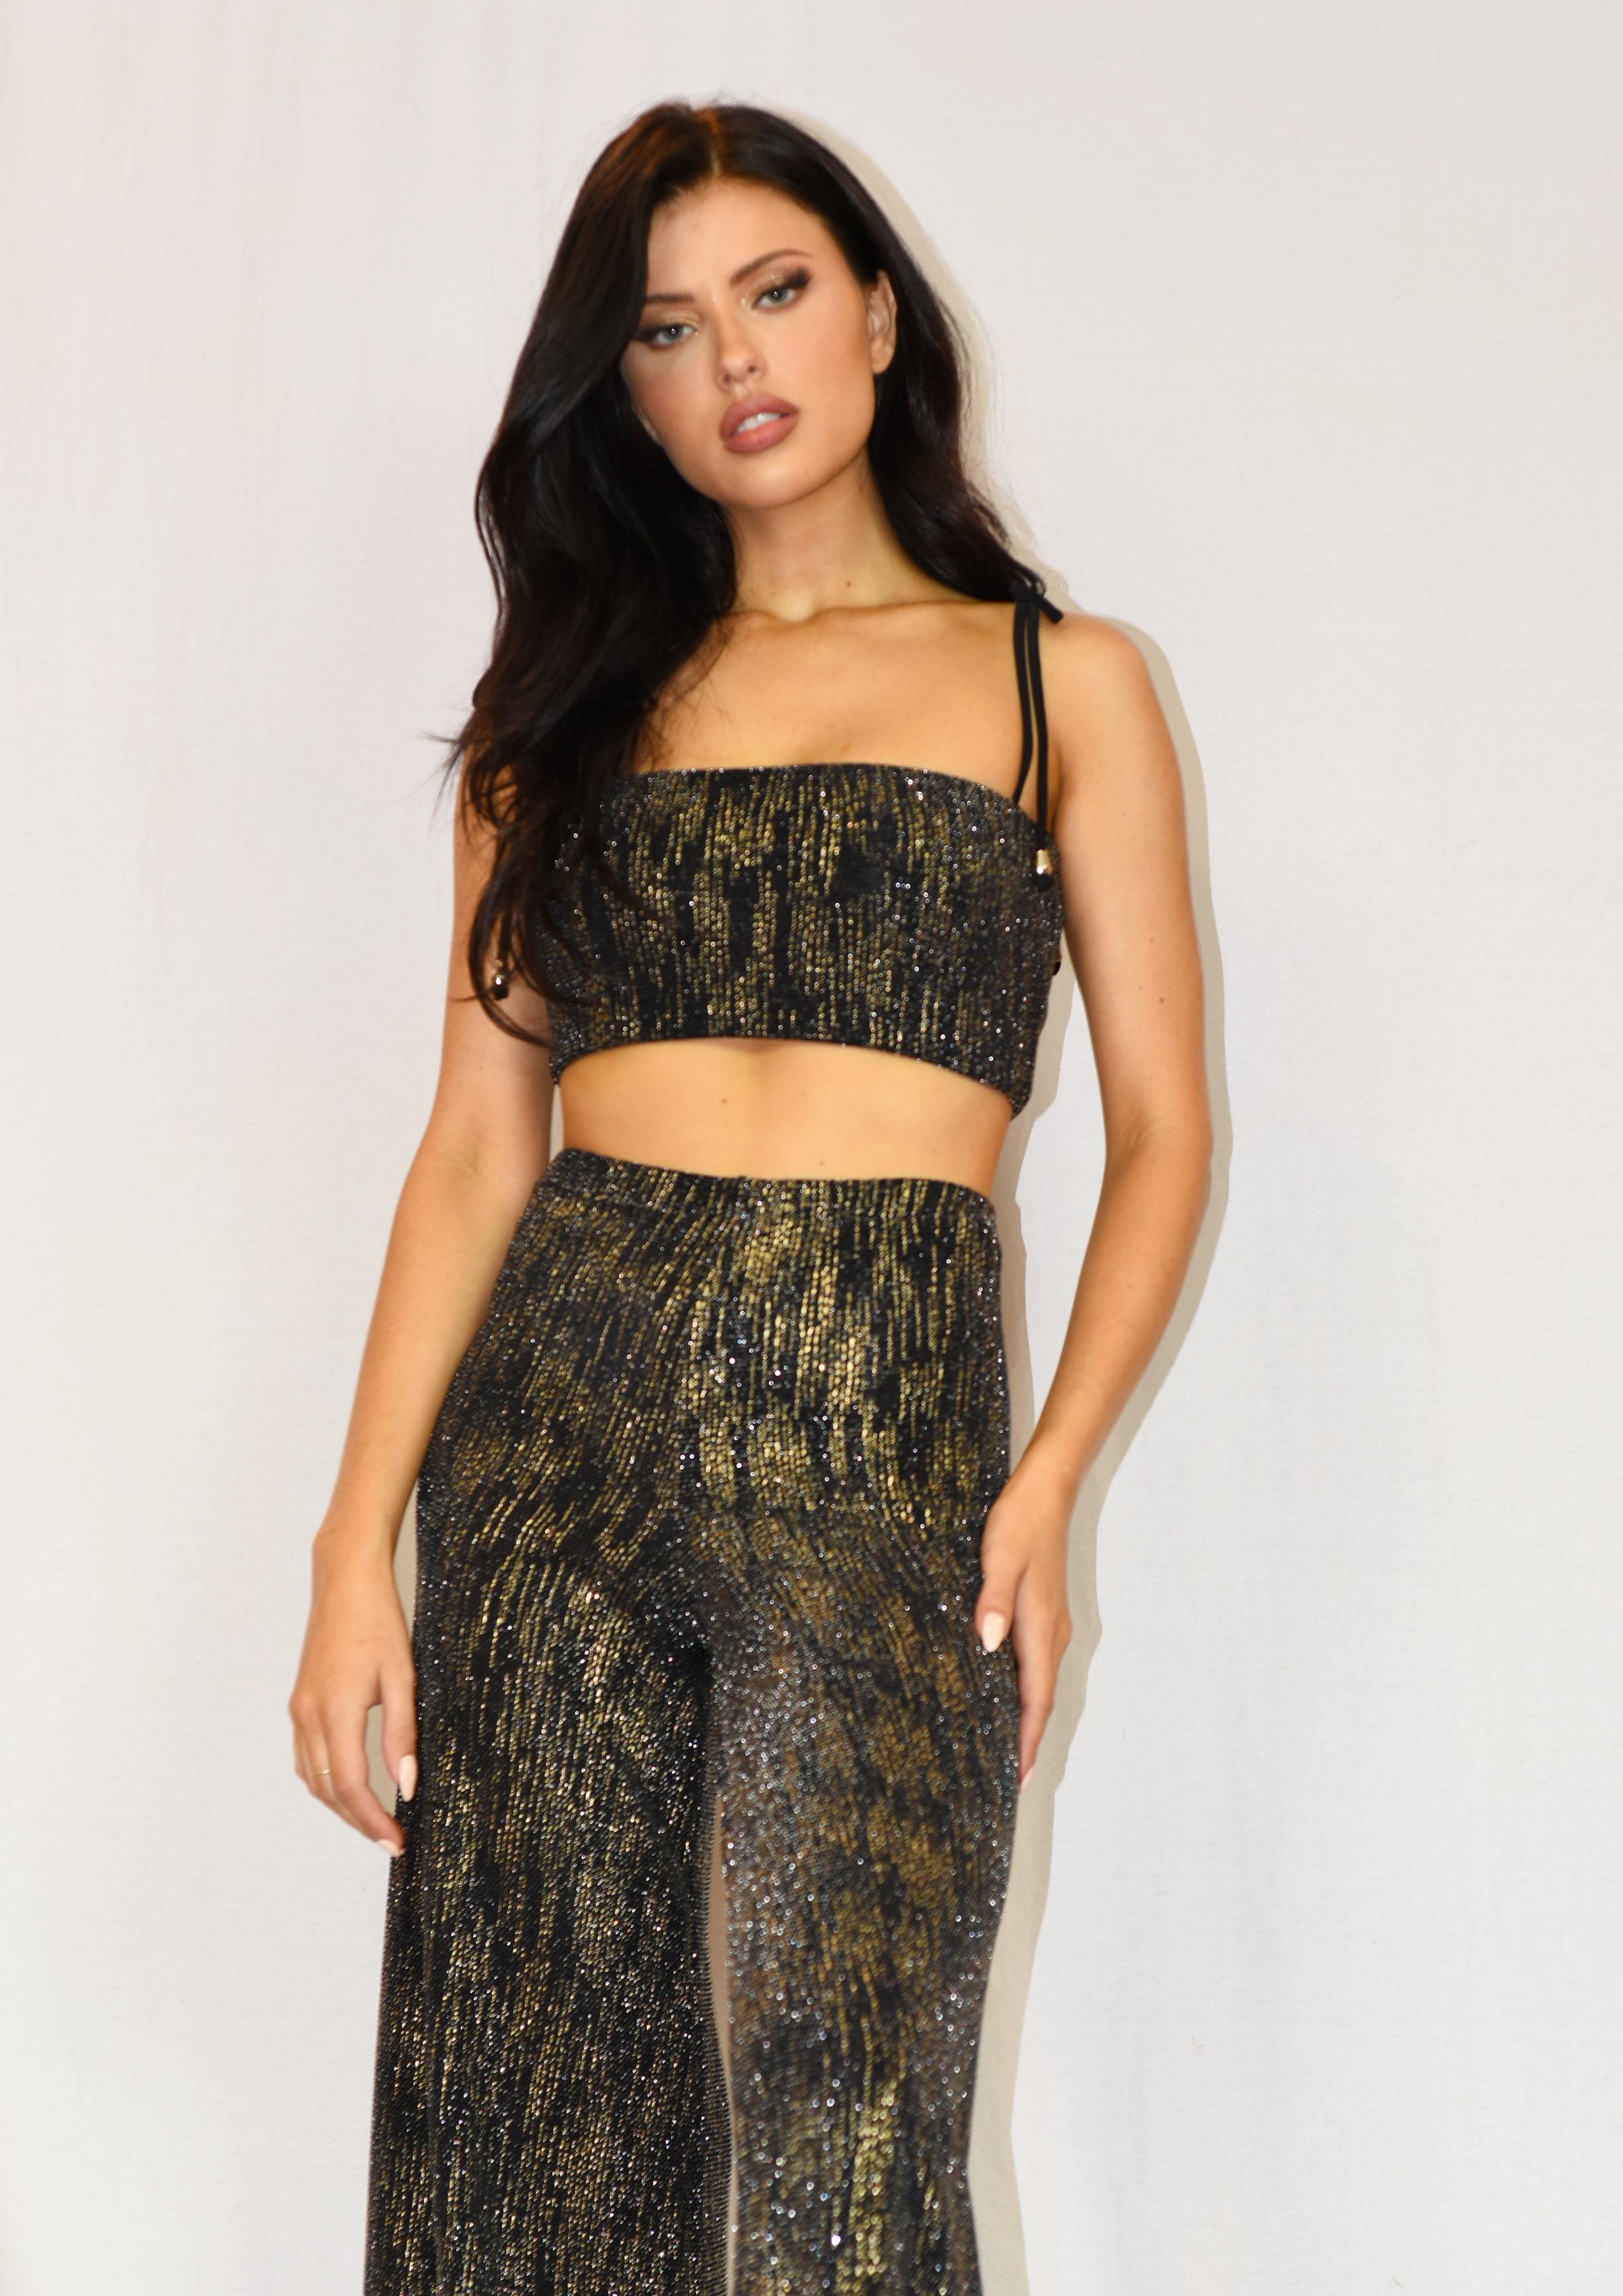 Ashleigh Crop Top freeshipping - Evangeline